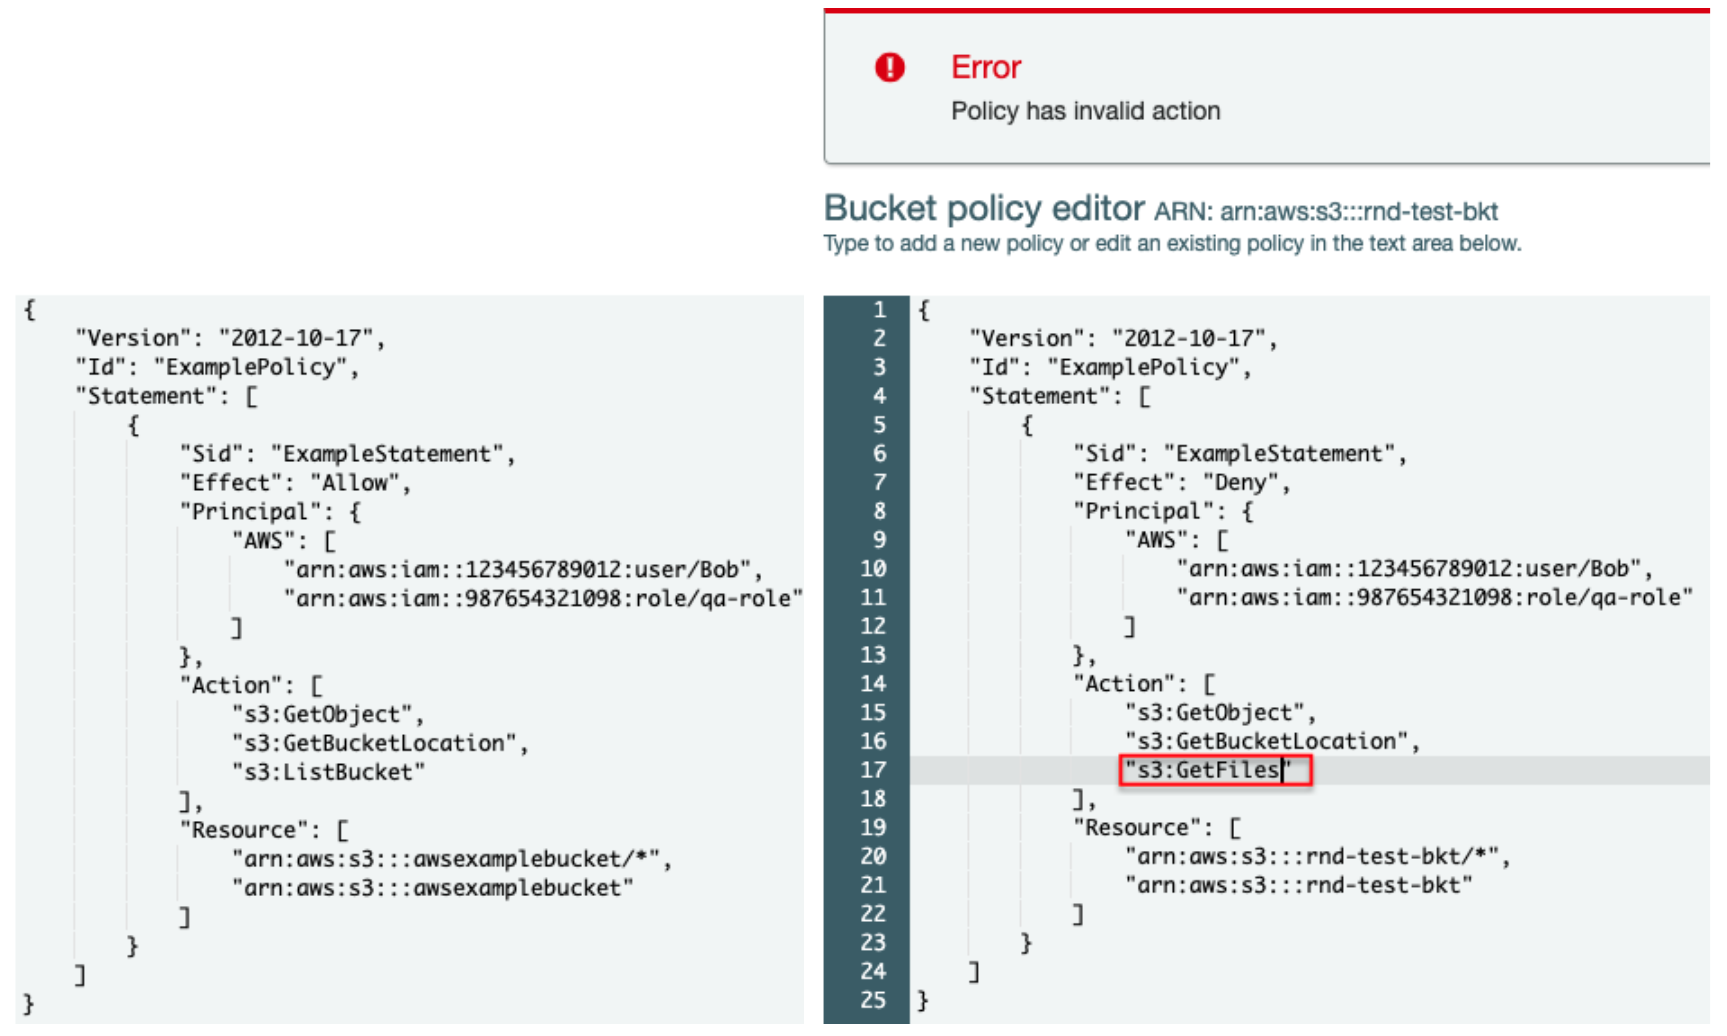 "This represents the simplest form of a resource-based policy. In this example, an error message is raised because ""GetFiles"" is not a supported action."